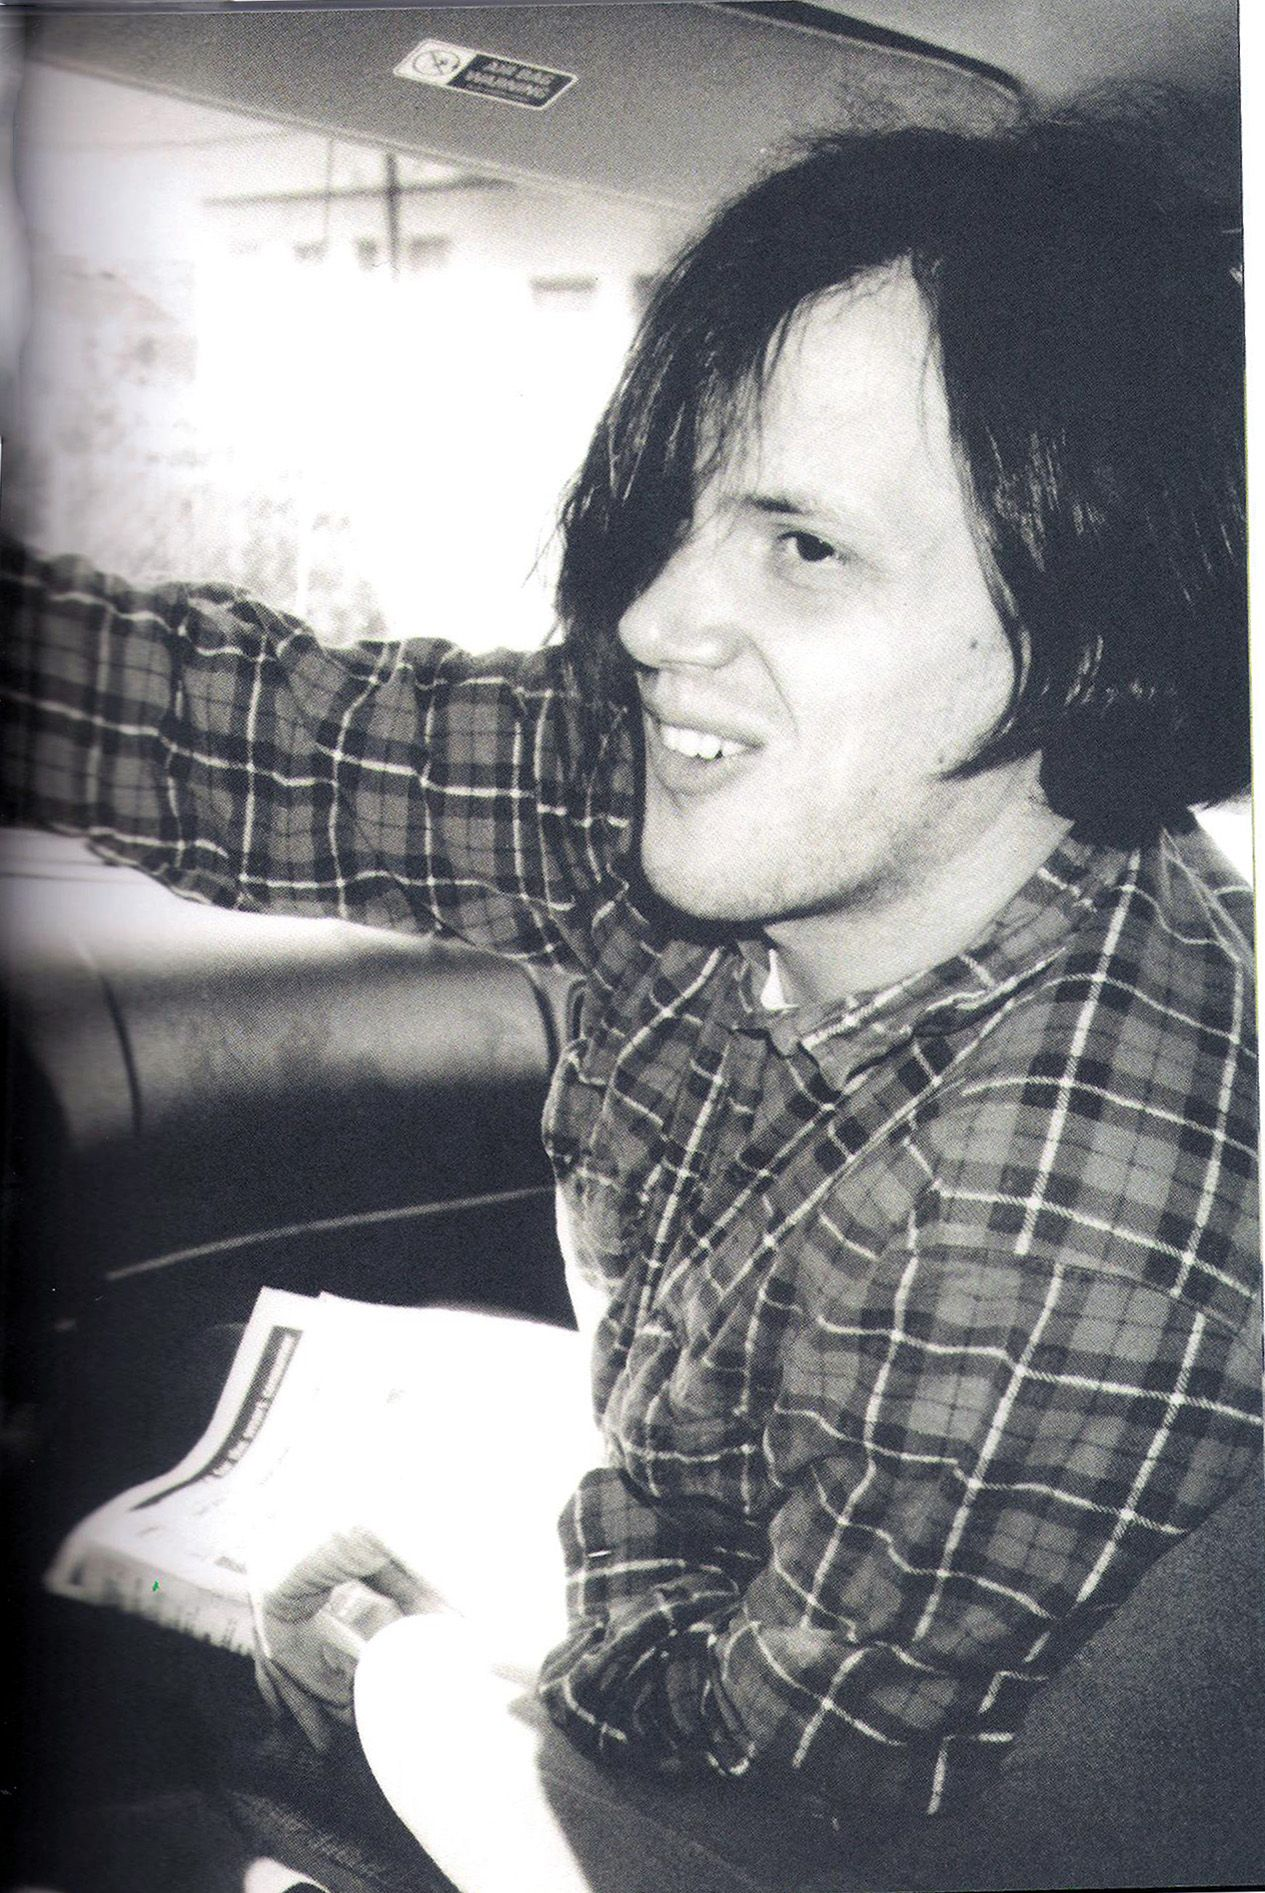 Jeff Mangum :: Neutral Milk Hotel